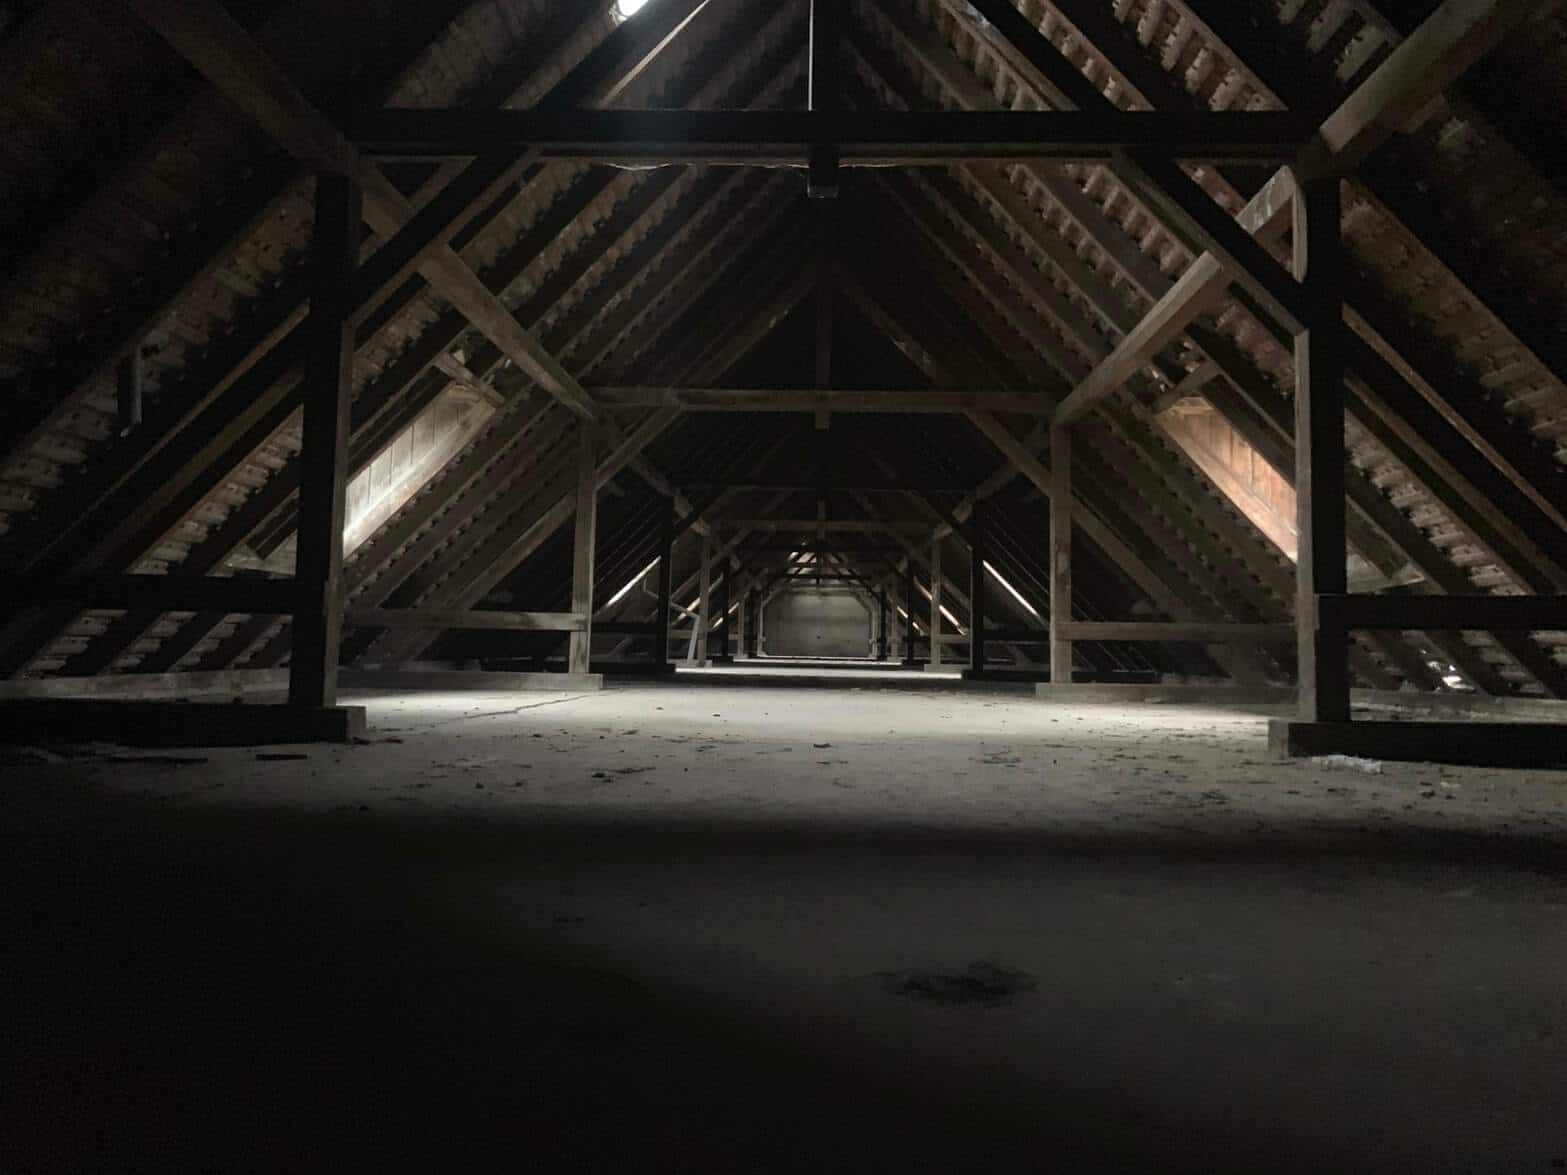 A dark and empty attic